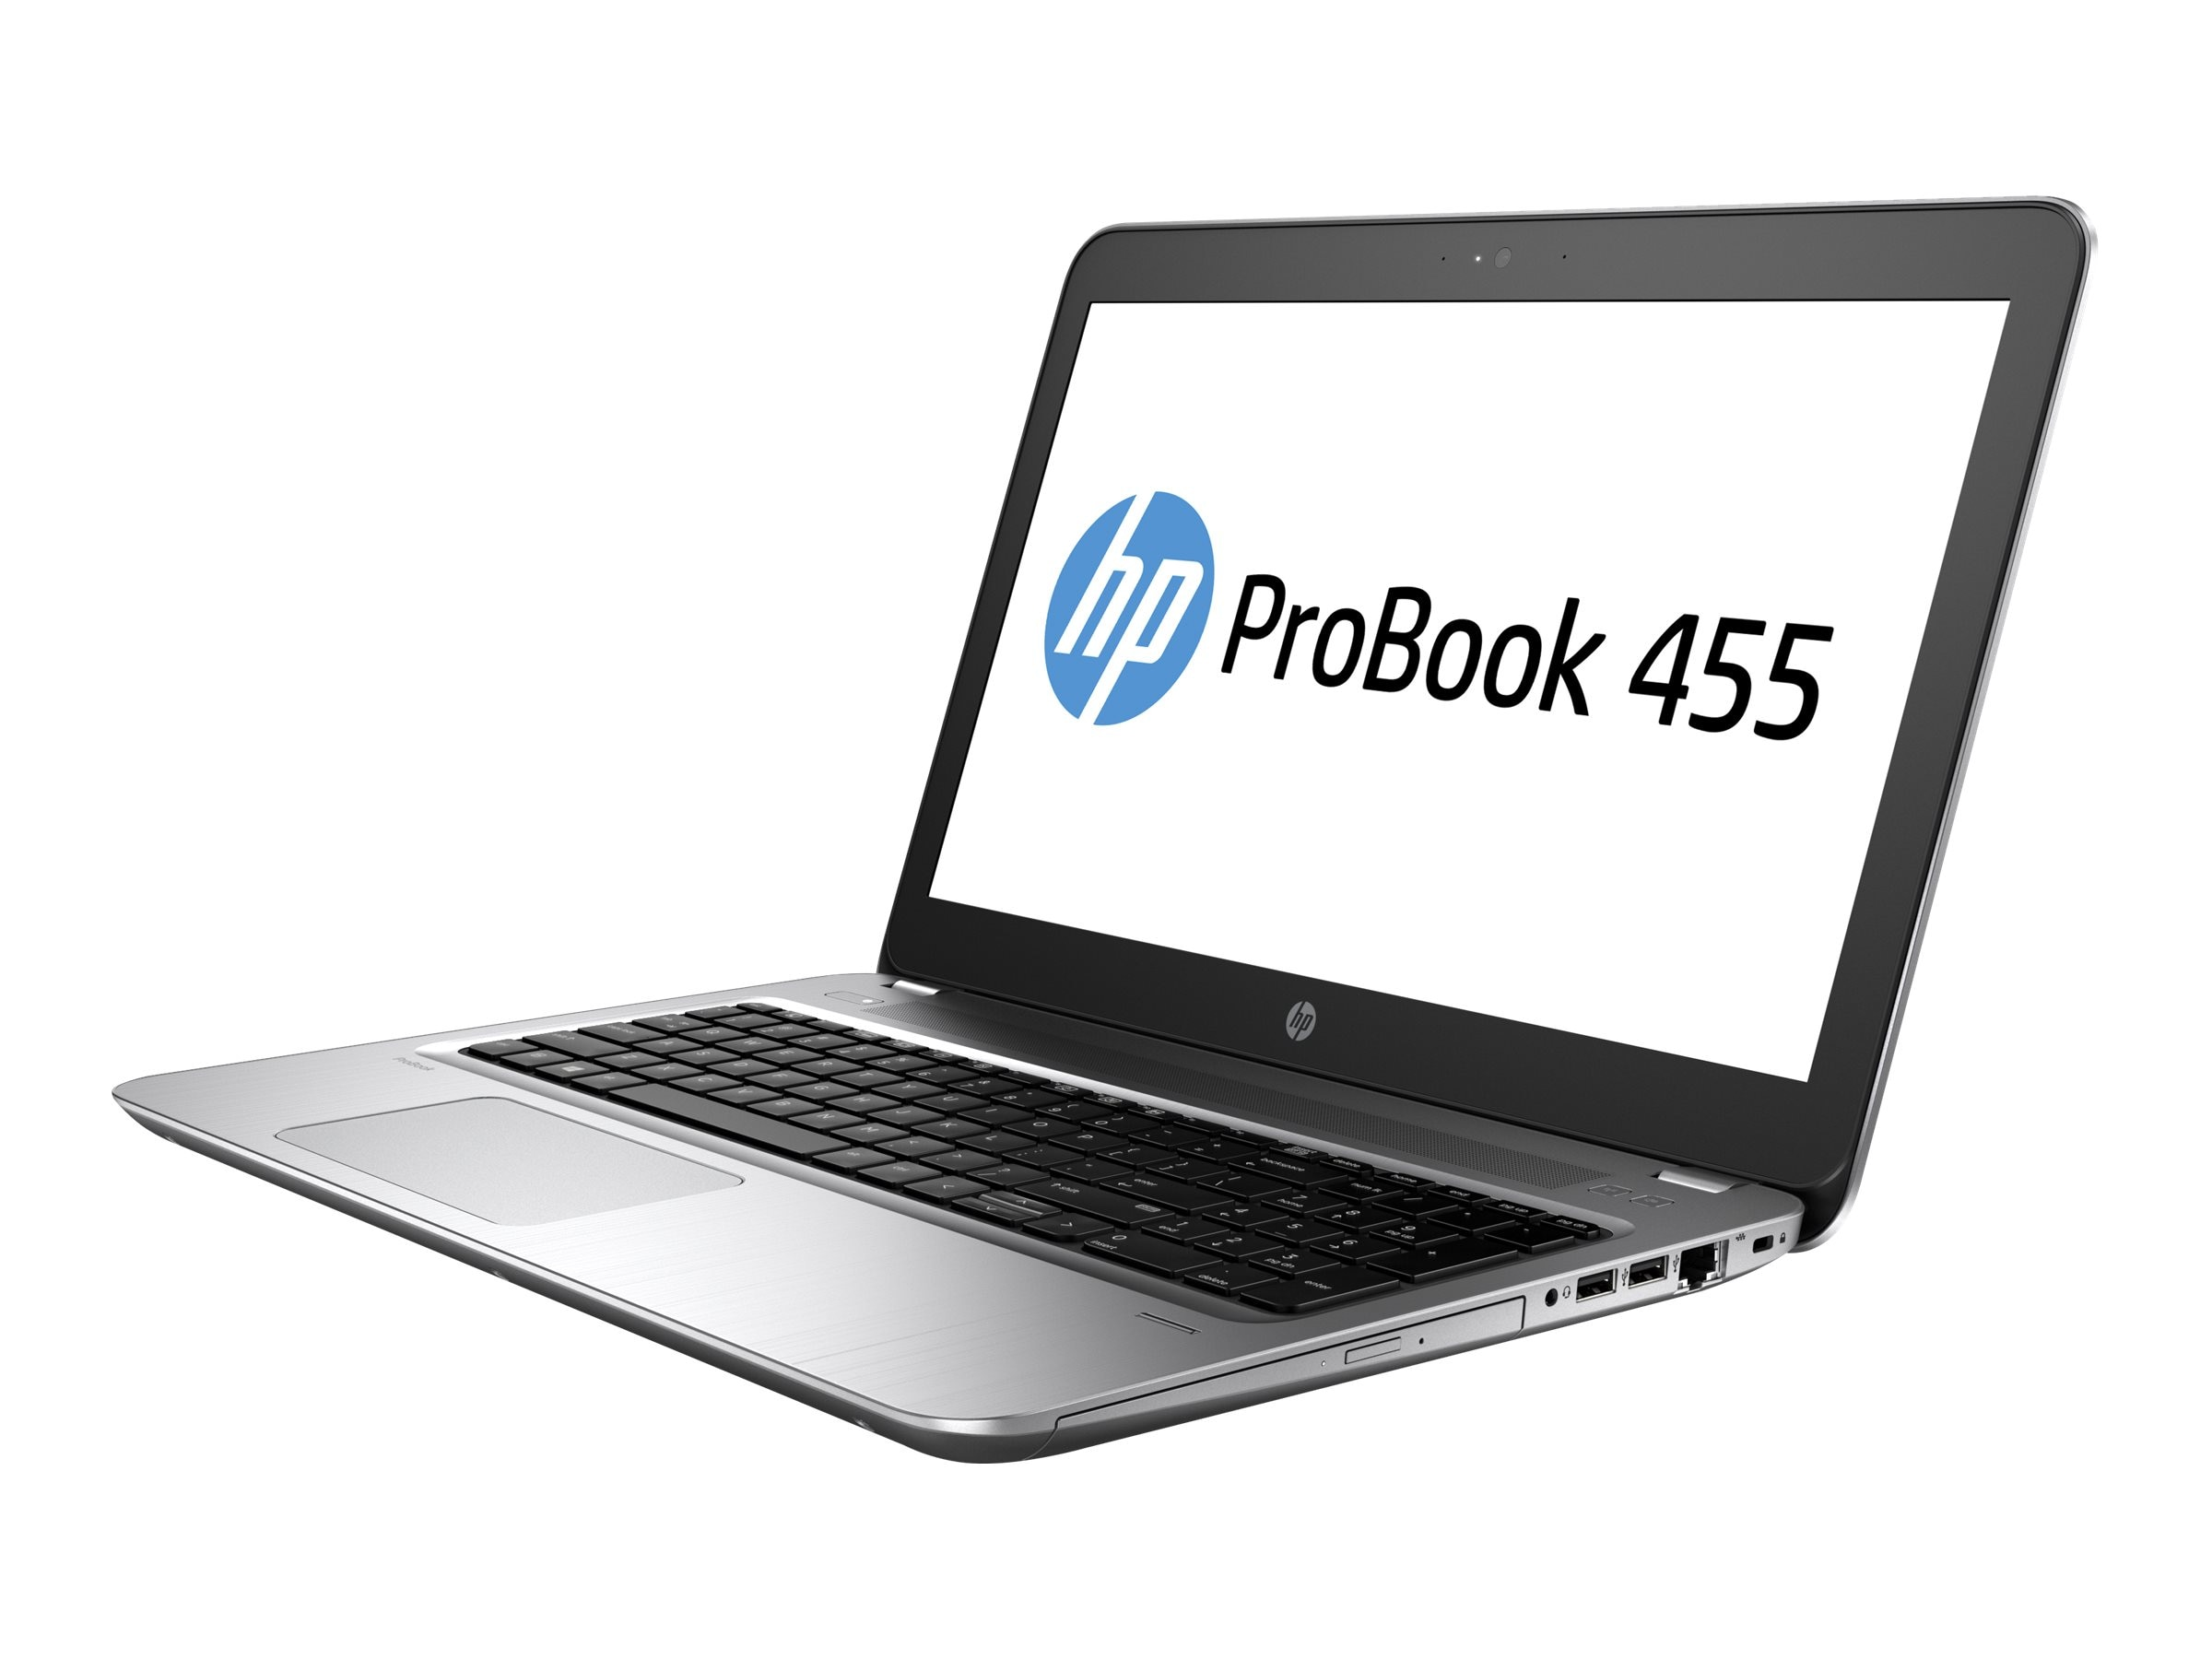 HP ProBook 455 G4 2.4GHz A10 Series 15.6in display